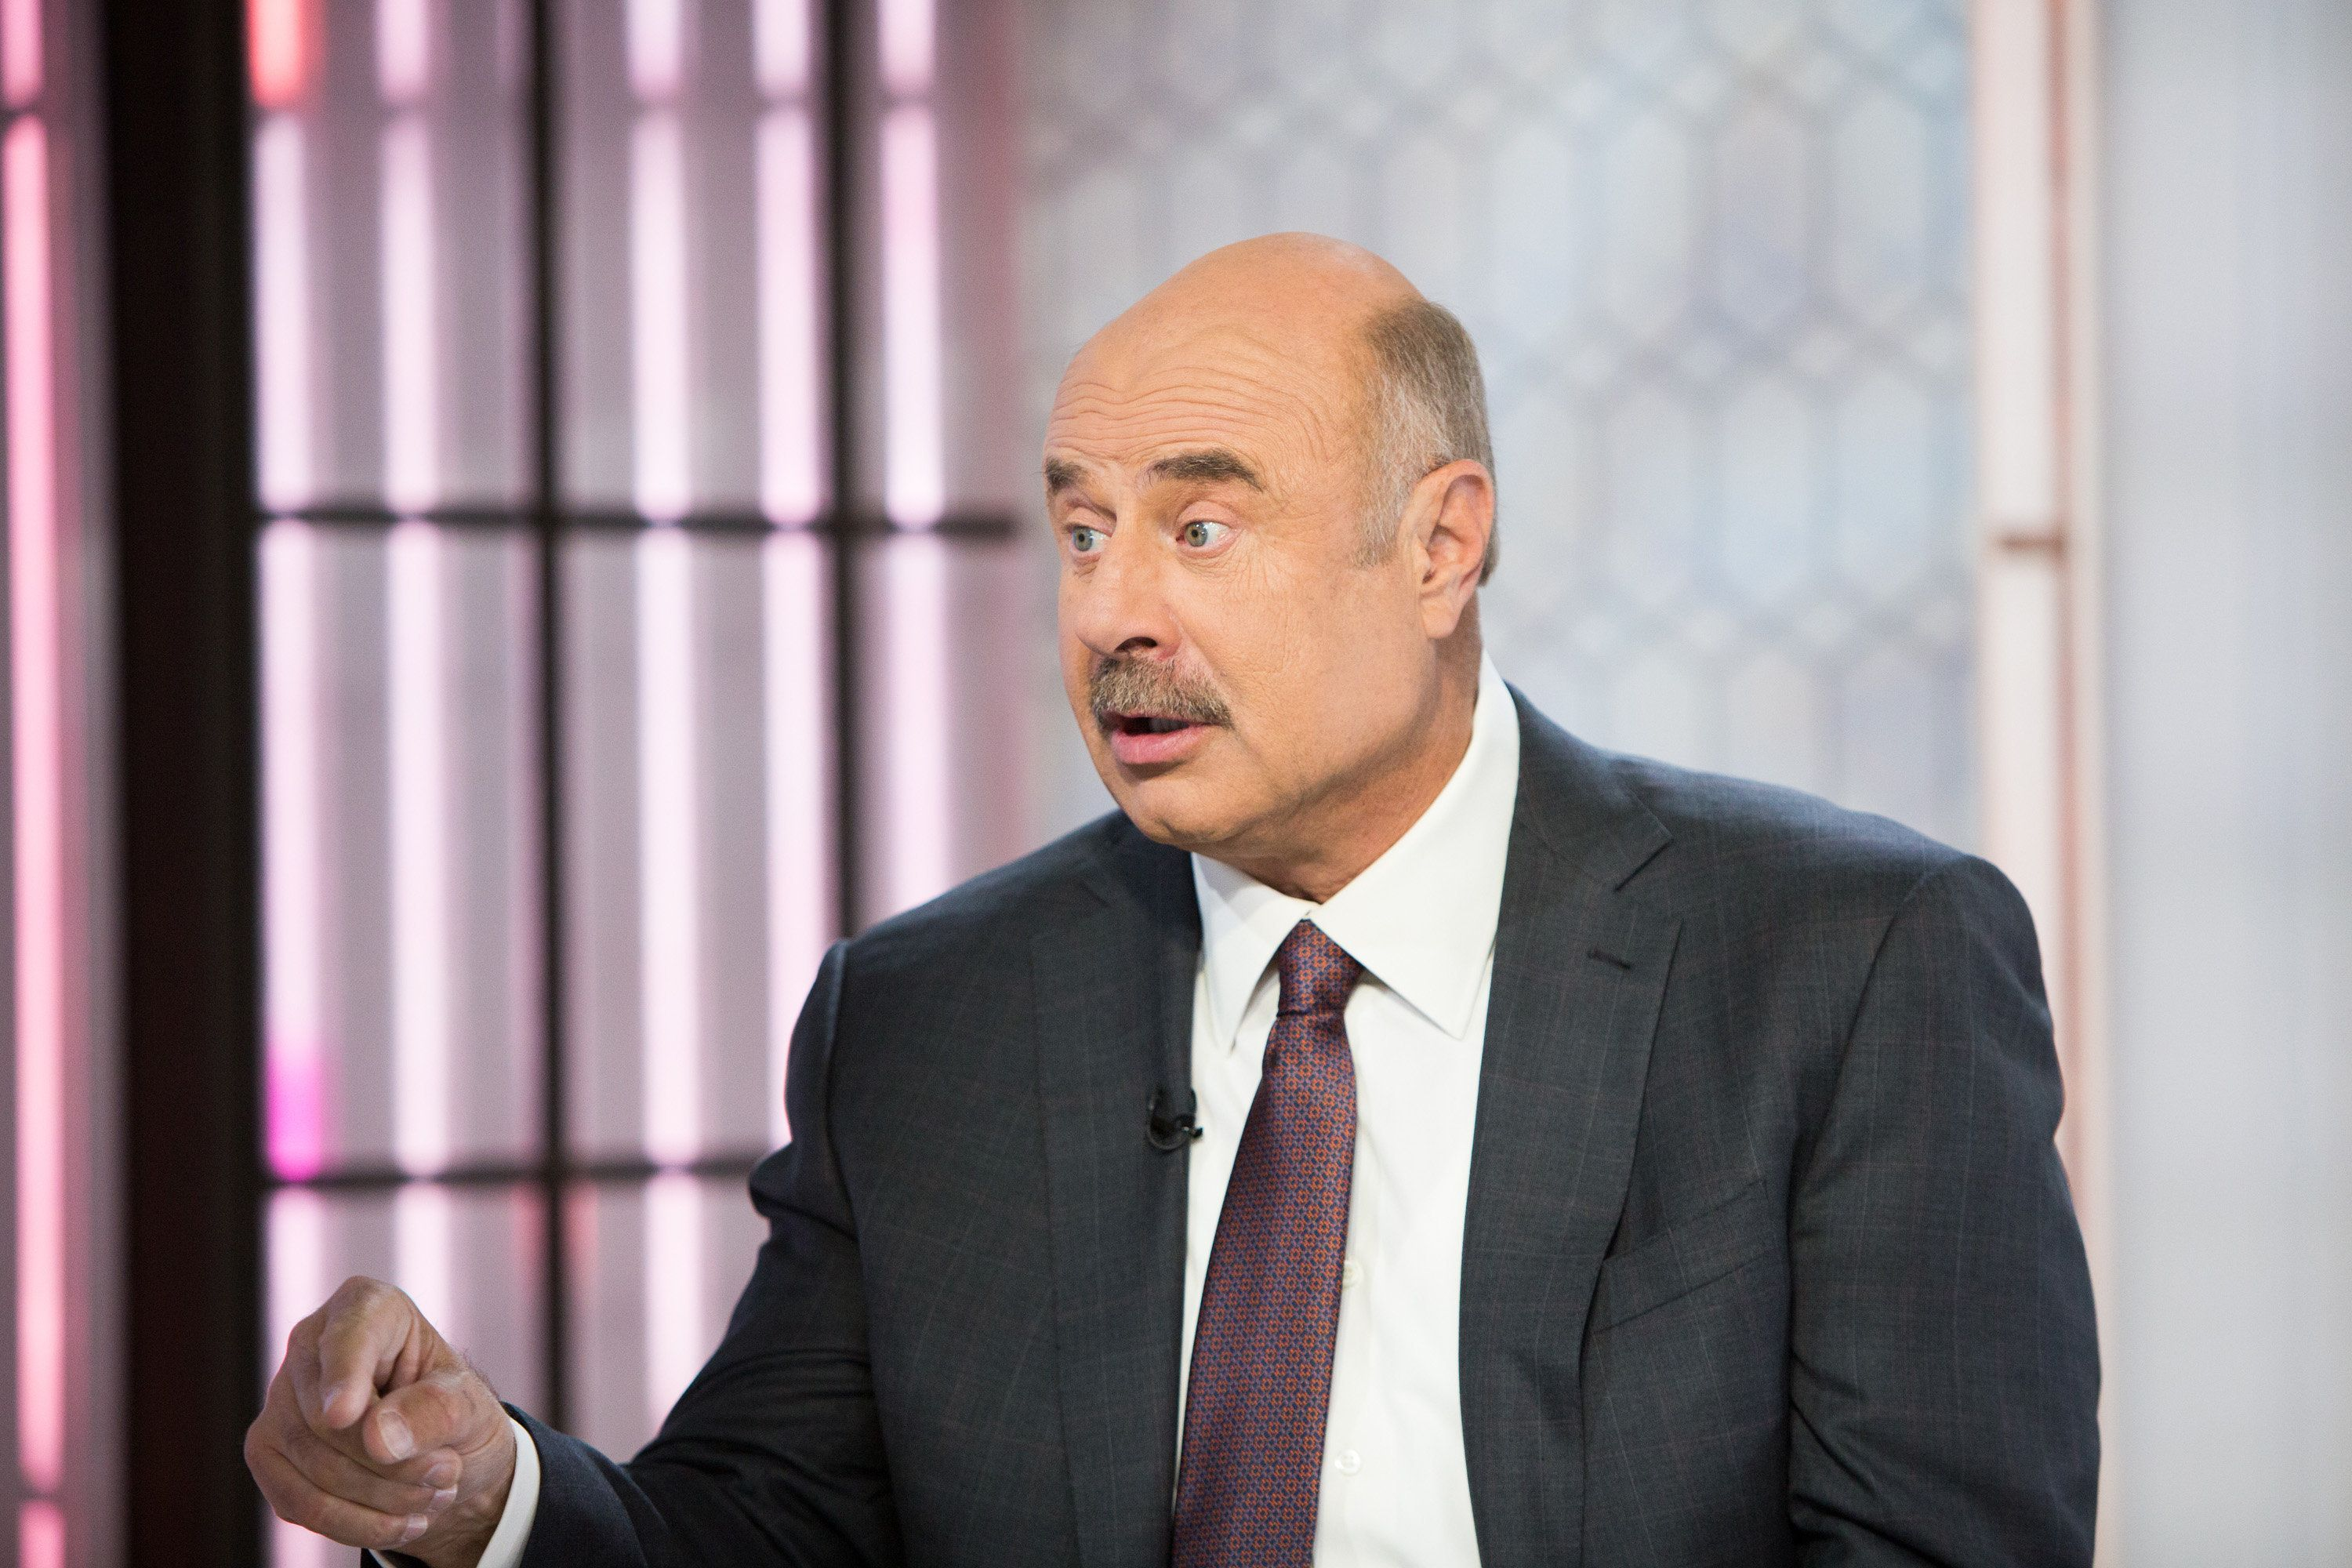 TODAY -- Pictured: Dr. Phil  on Thursday, October 26, 2017 -- (Photo by: Nathan Congleton/NBC/NBCU Photo Bank via Getty Images)